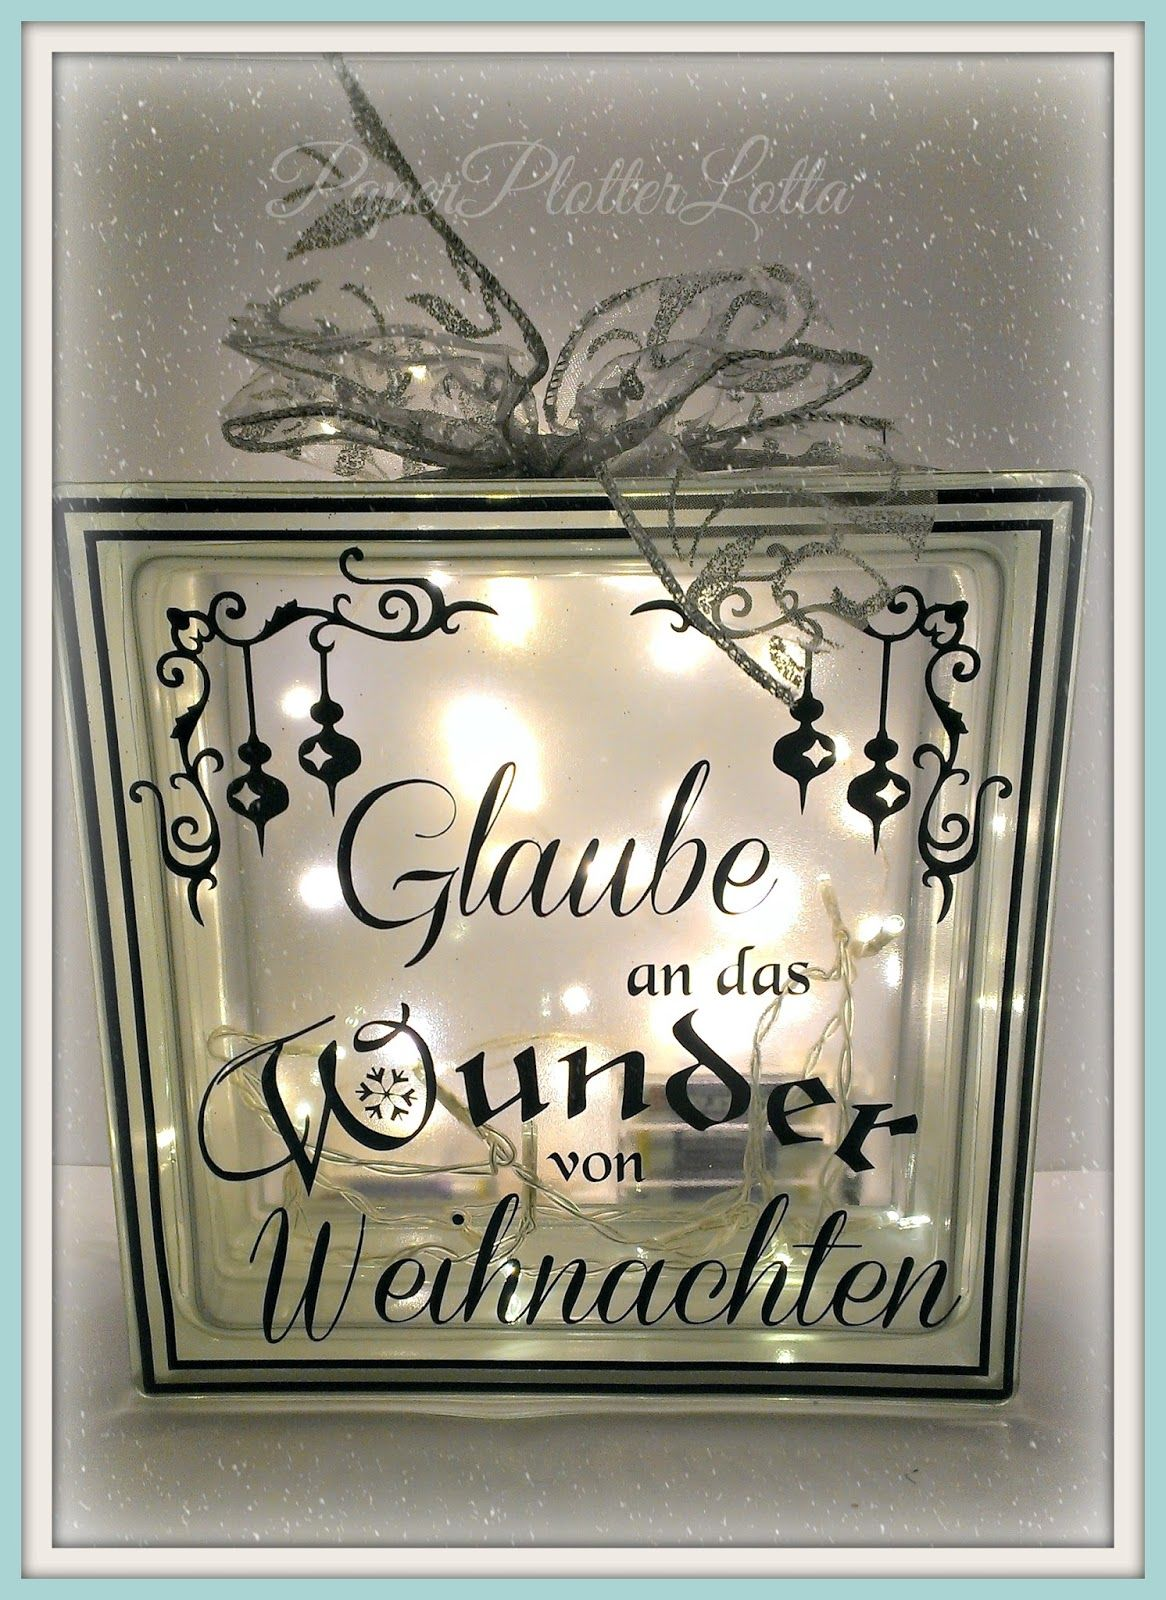 paperplotterlottas craftchaos beleuchteter glasbaustein mit weihnachts spruch christmas. Black Bedroom Furniture Sets. Home Design Ideas